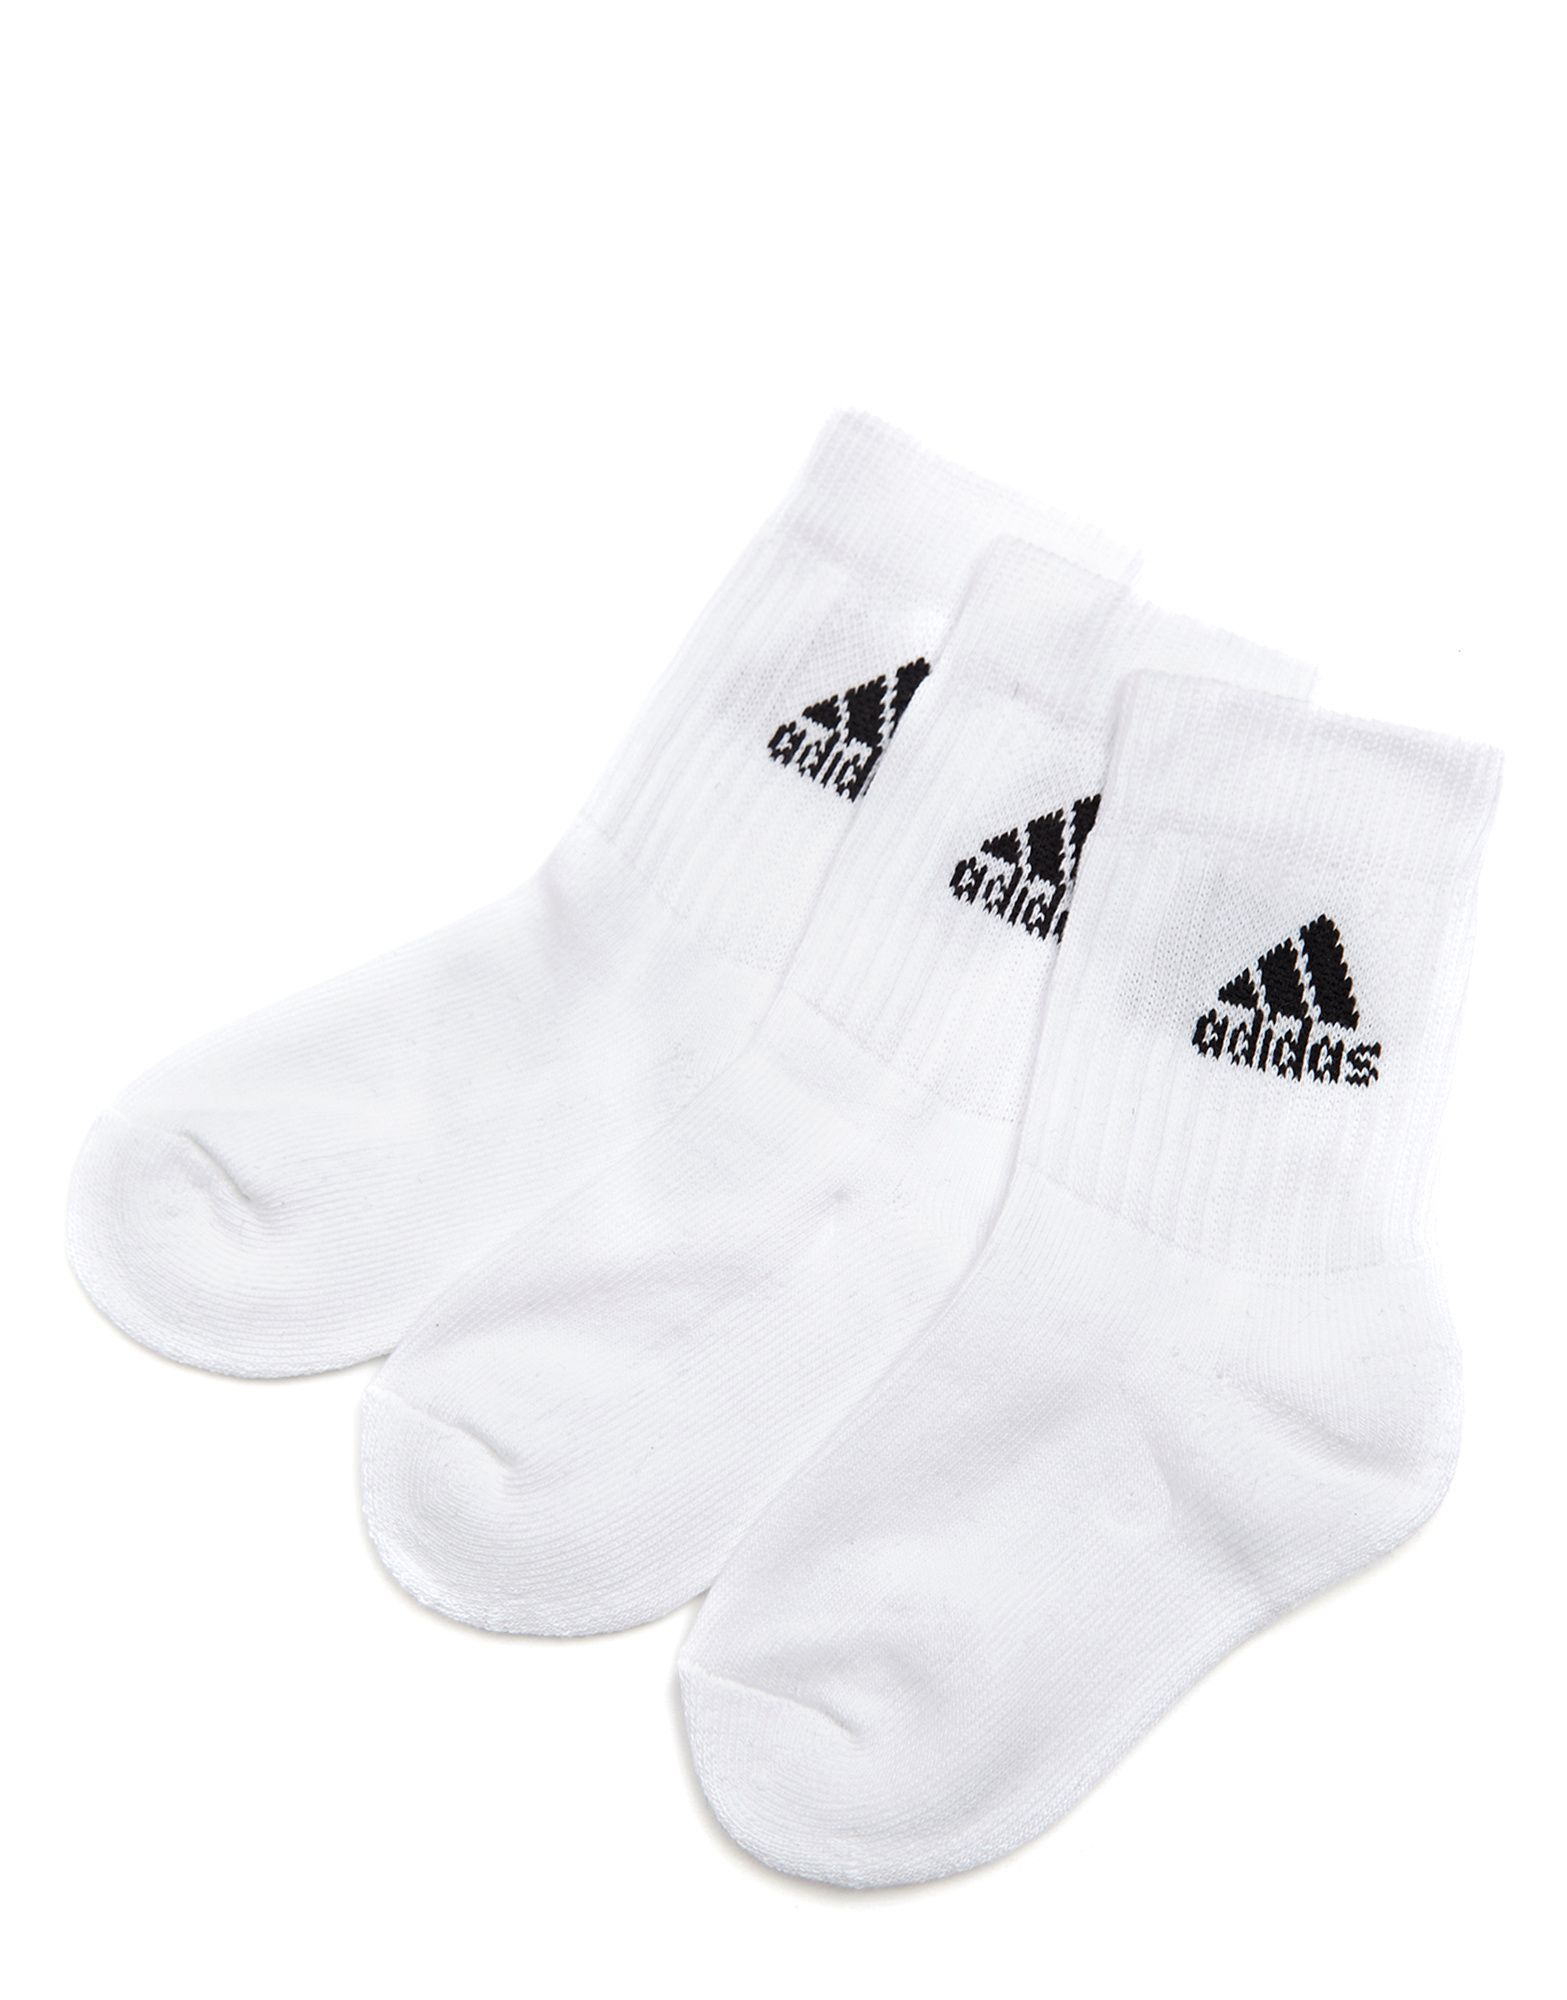 adidas 3 Pack Crew Sports Socks Junior